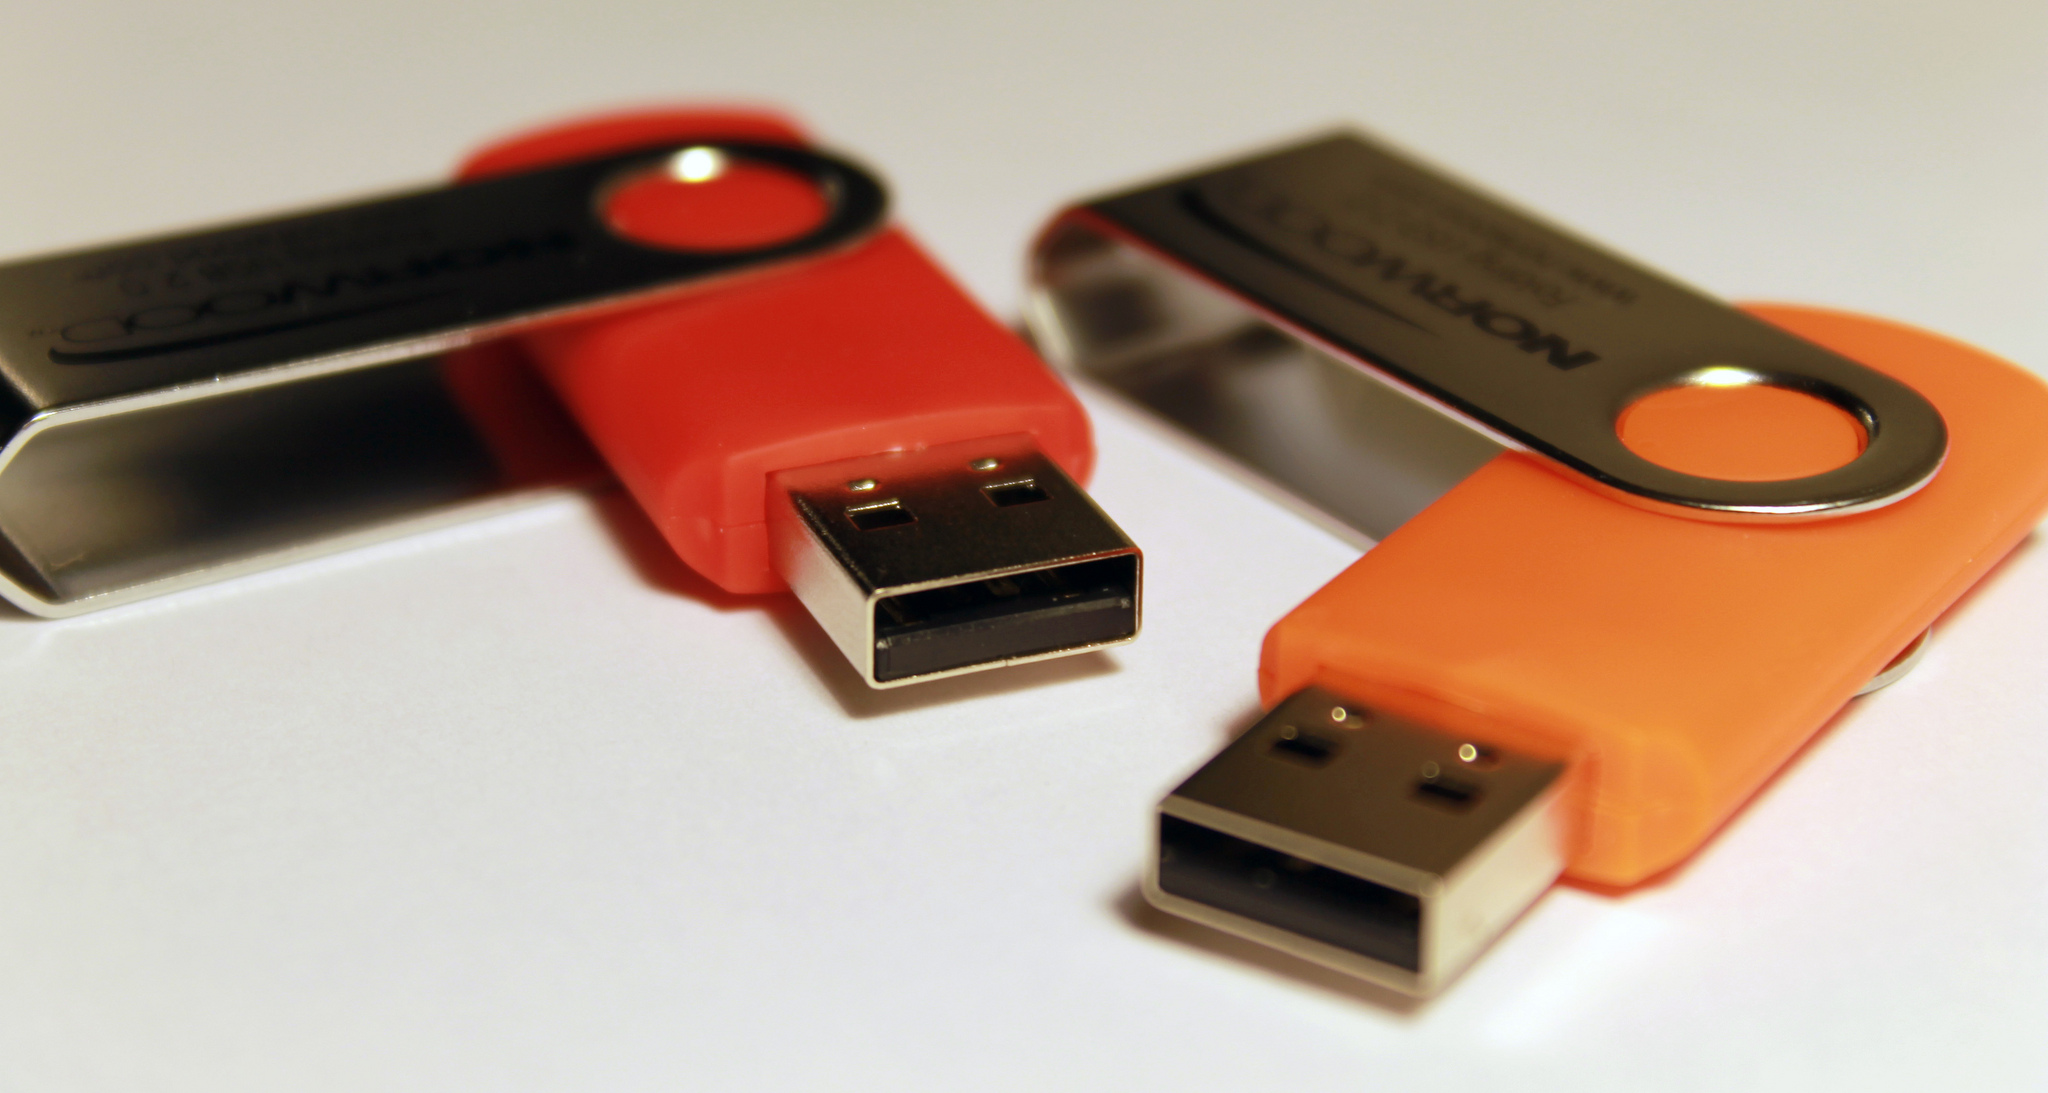 USB flash drives and hard drives made most other kinds of mass storage obsolete.